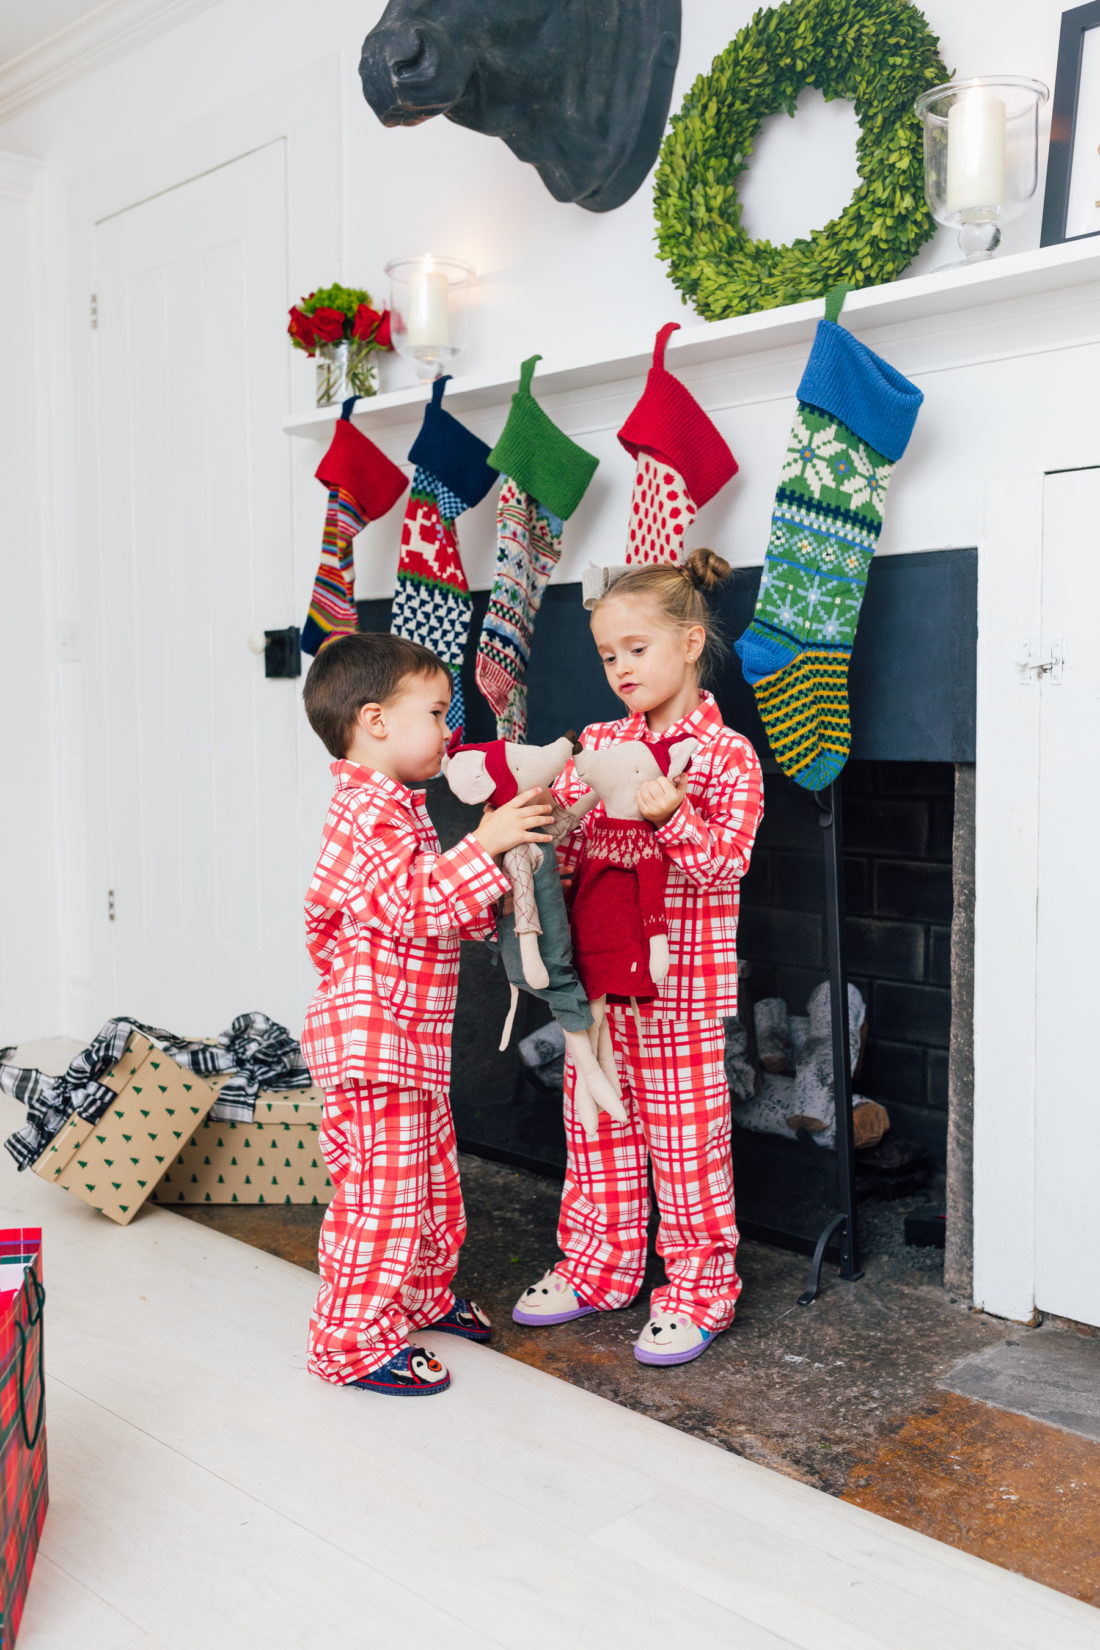 Marlowe and Major Martino show off their matching pajamas in front of their Christmas stockings, all from Garnet Hill